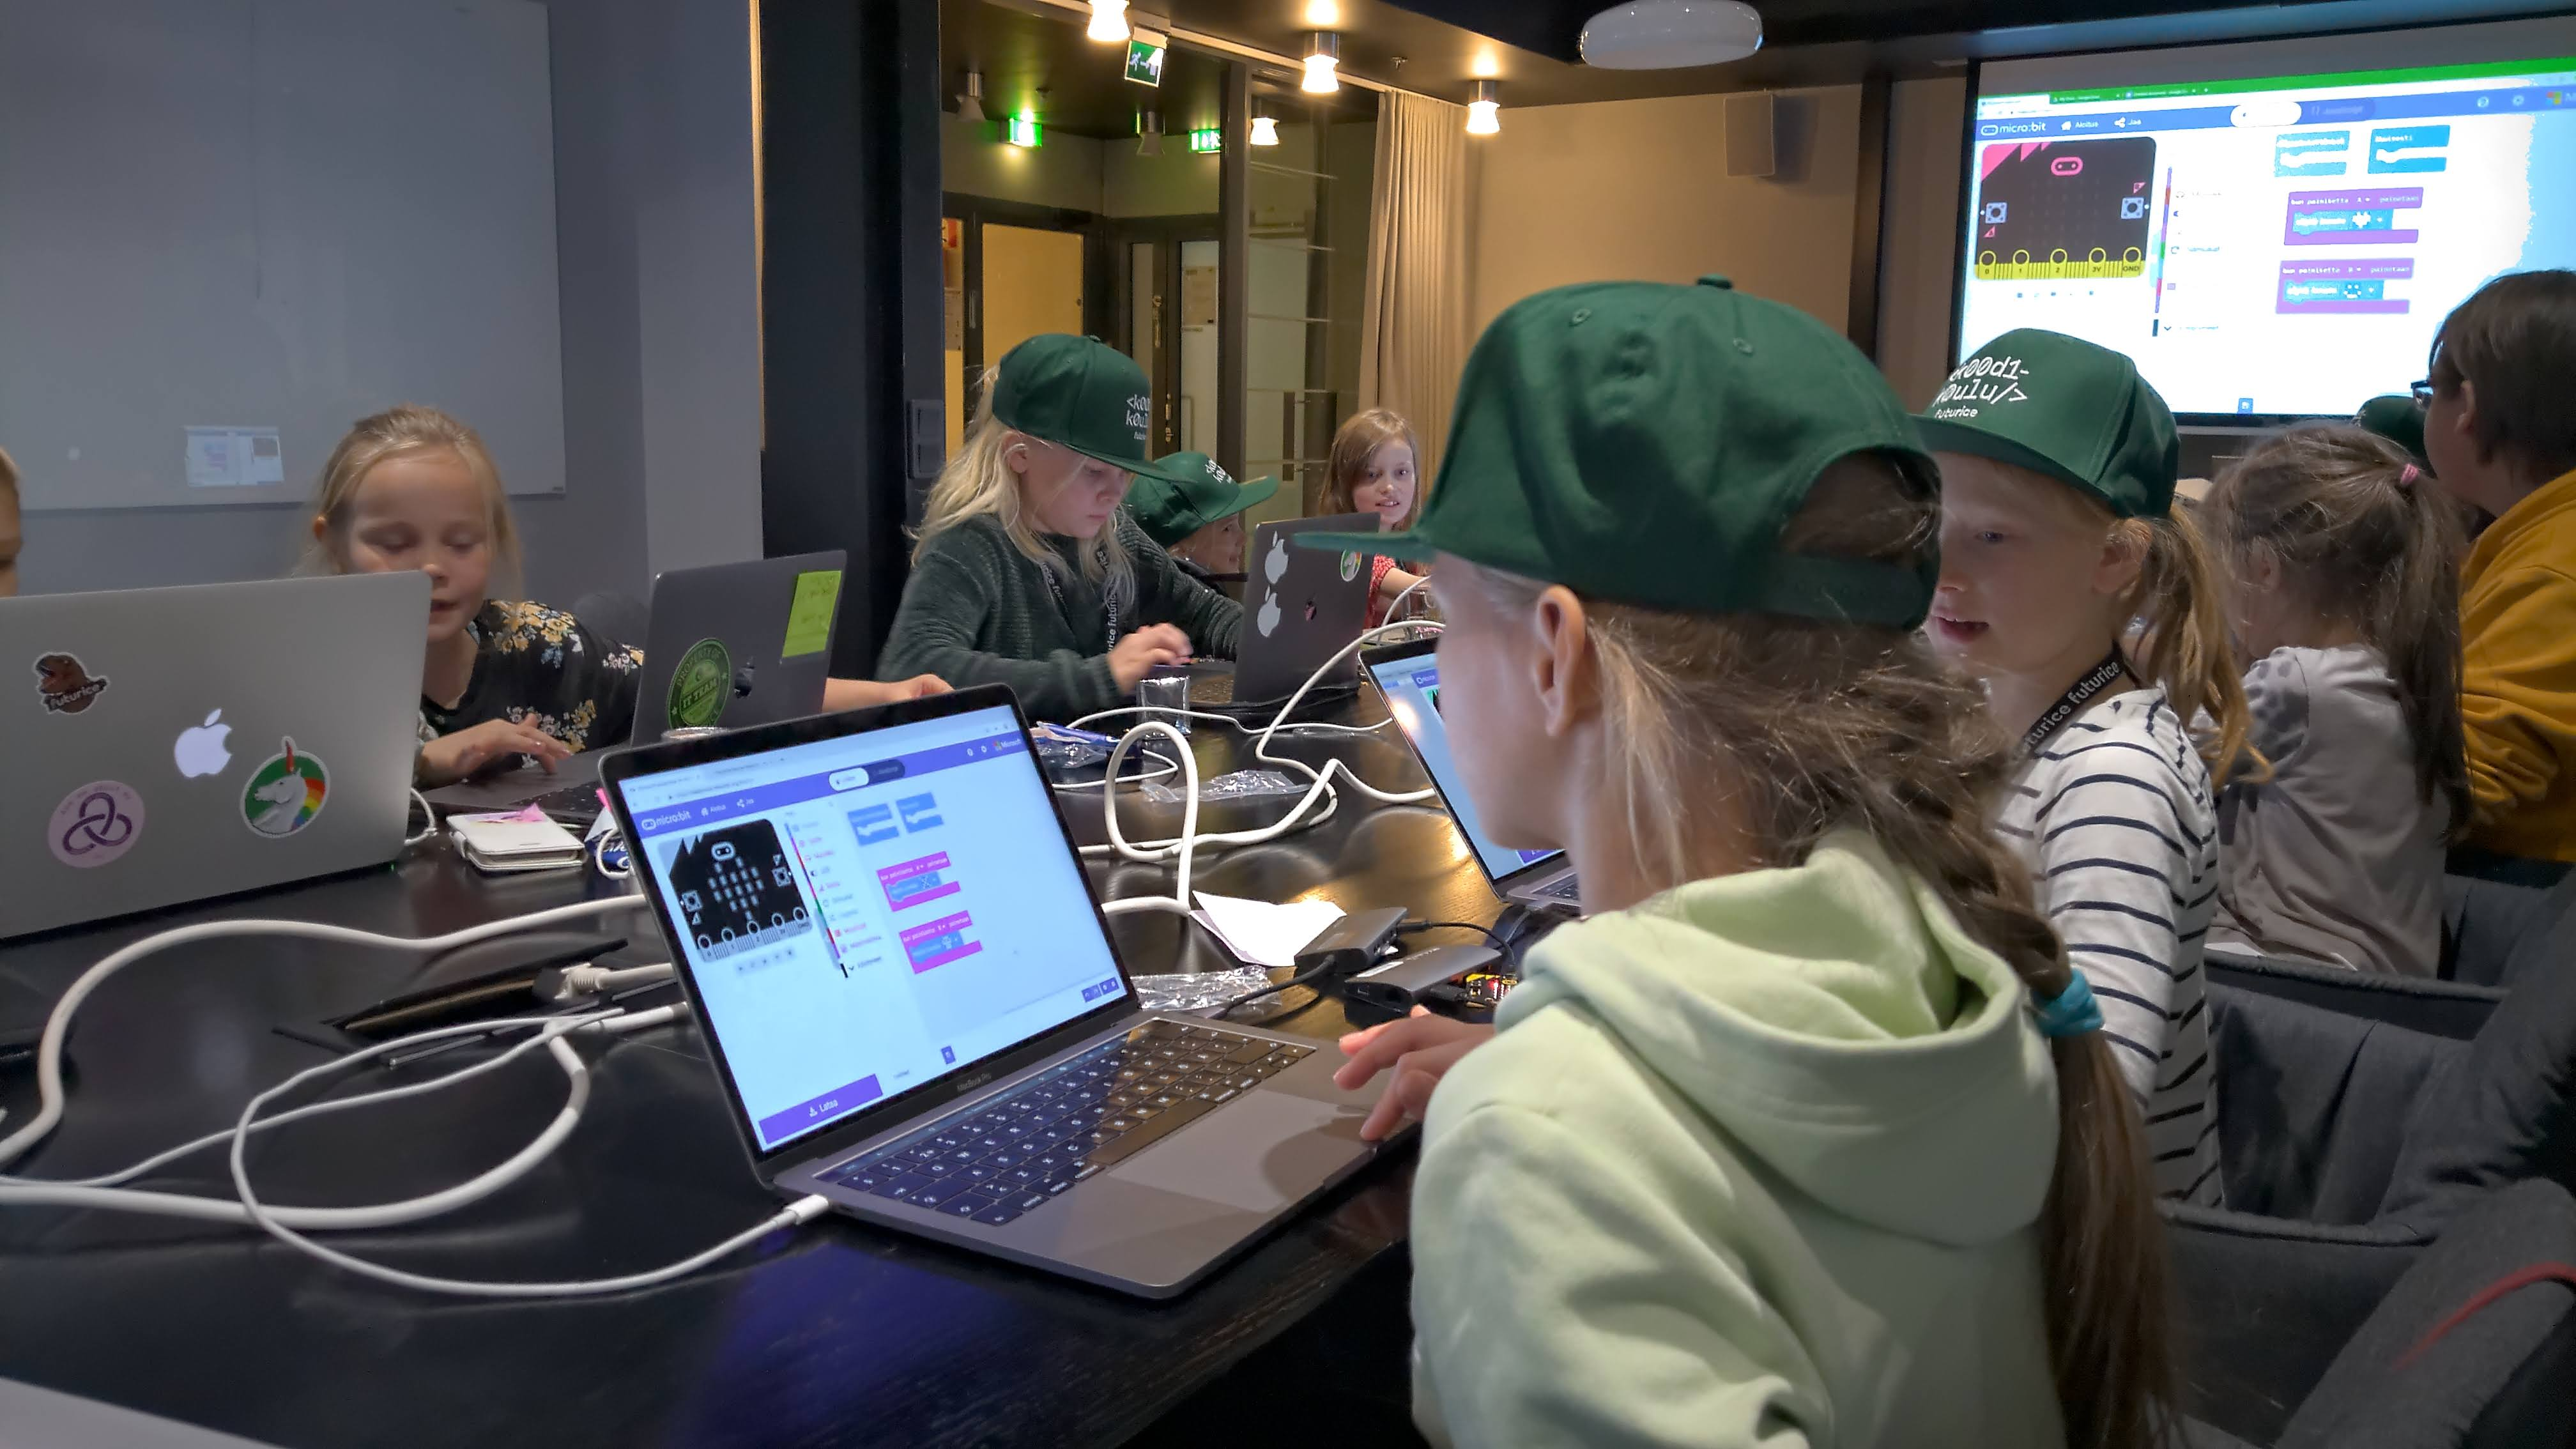 A group of children with green caps sitting in a meeting room working with laptops